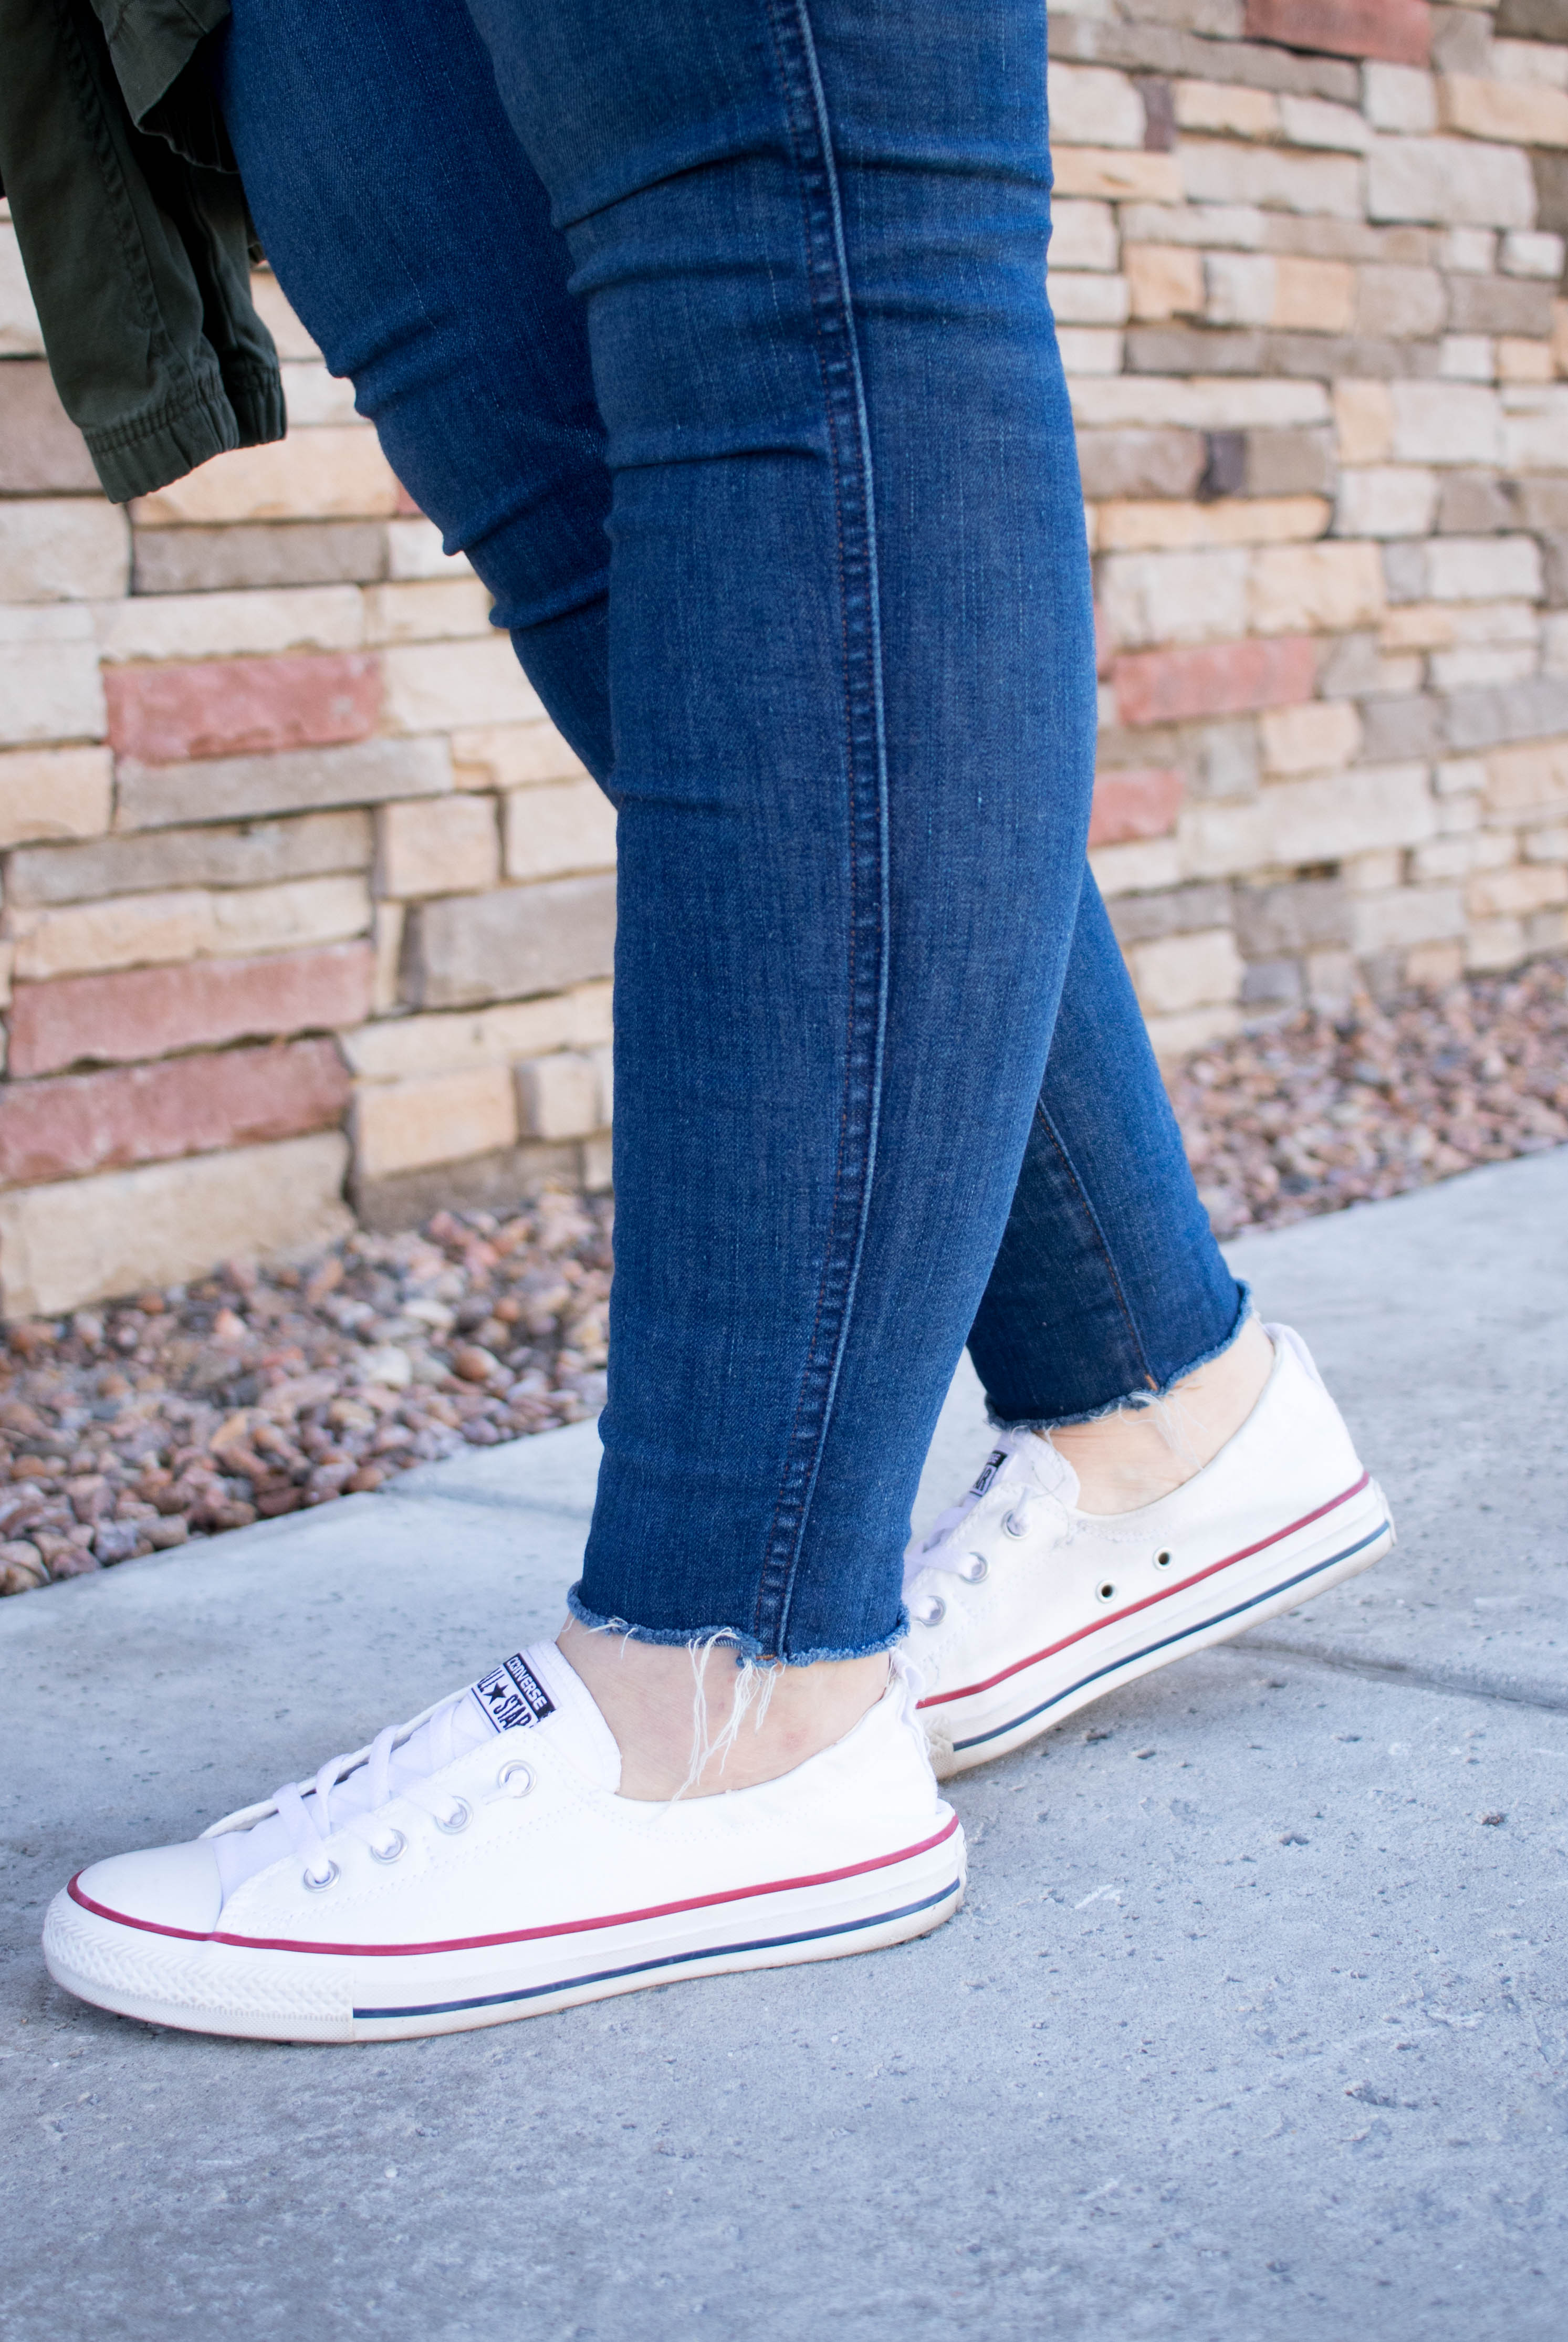 converse shoreline sneakers for spring #converse #sneakers #madewelljeans